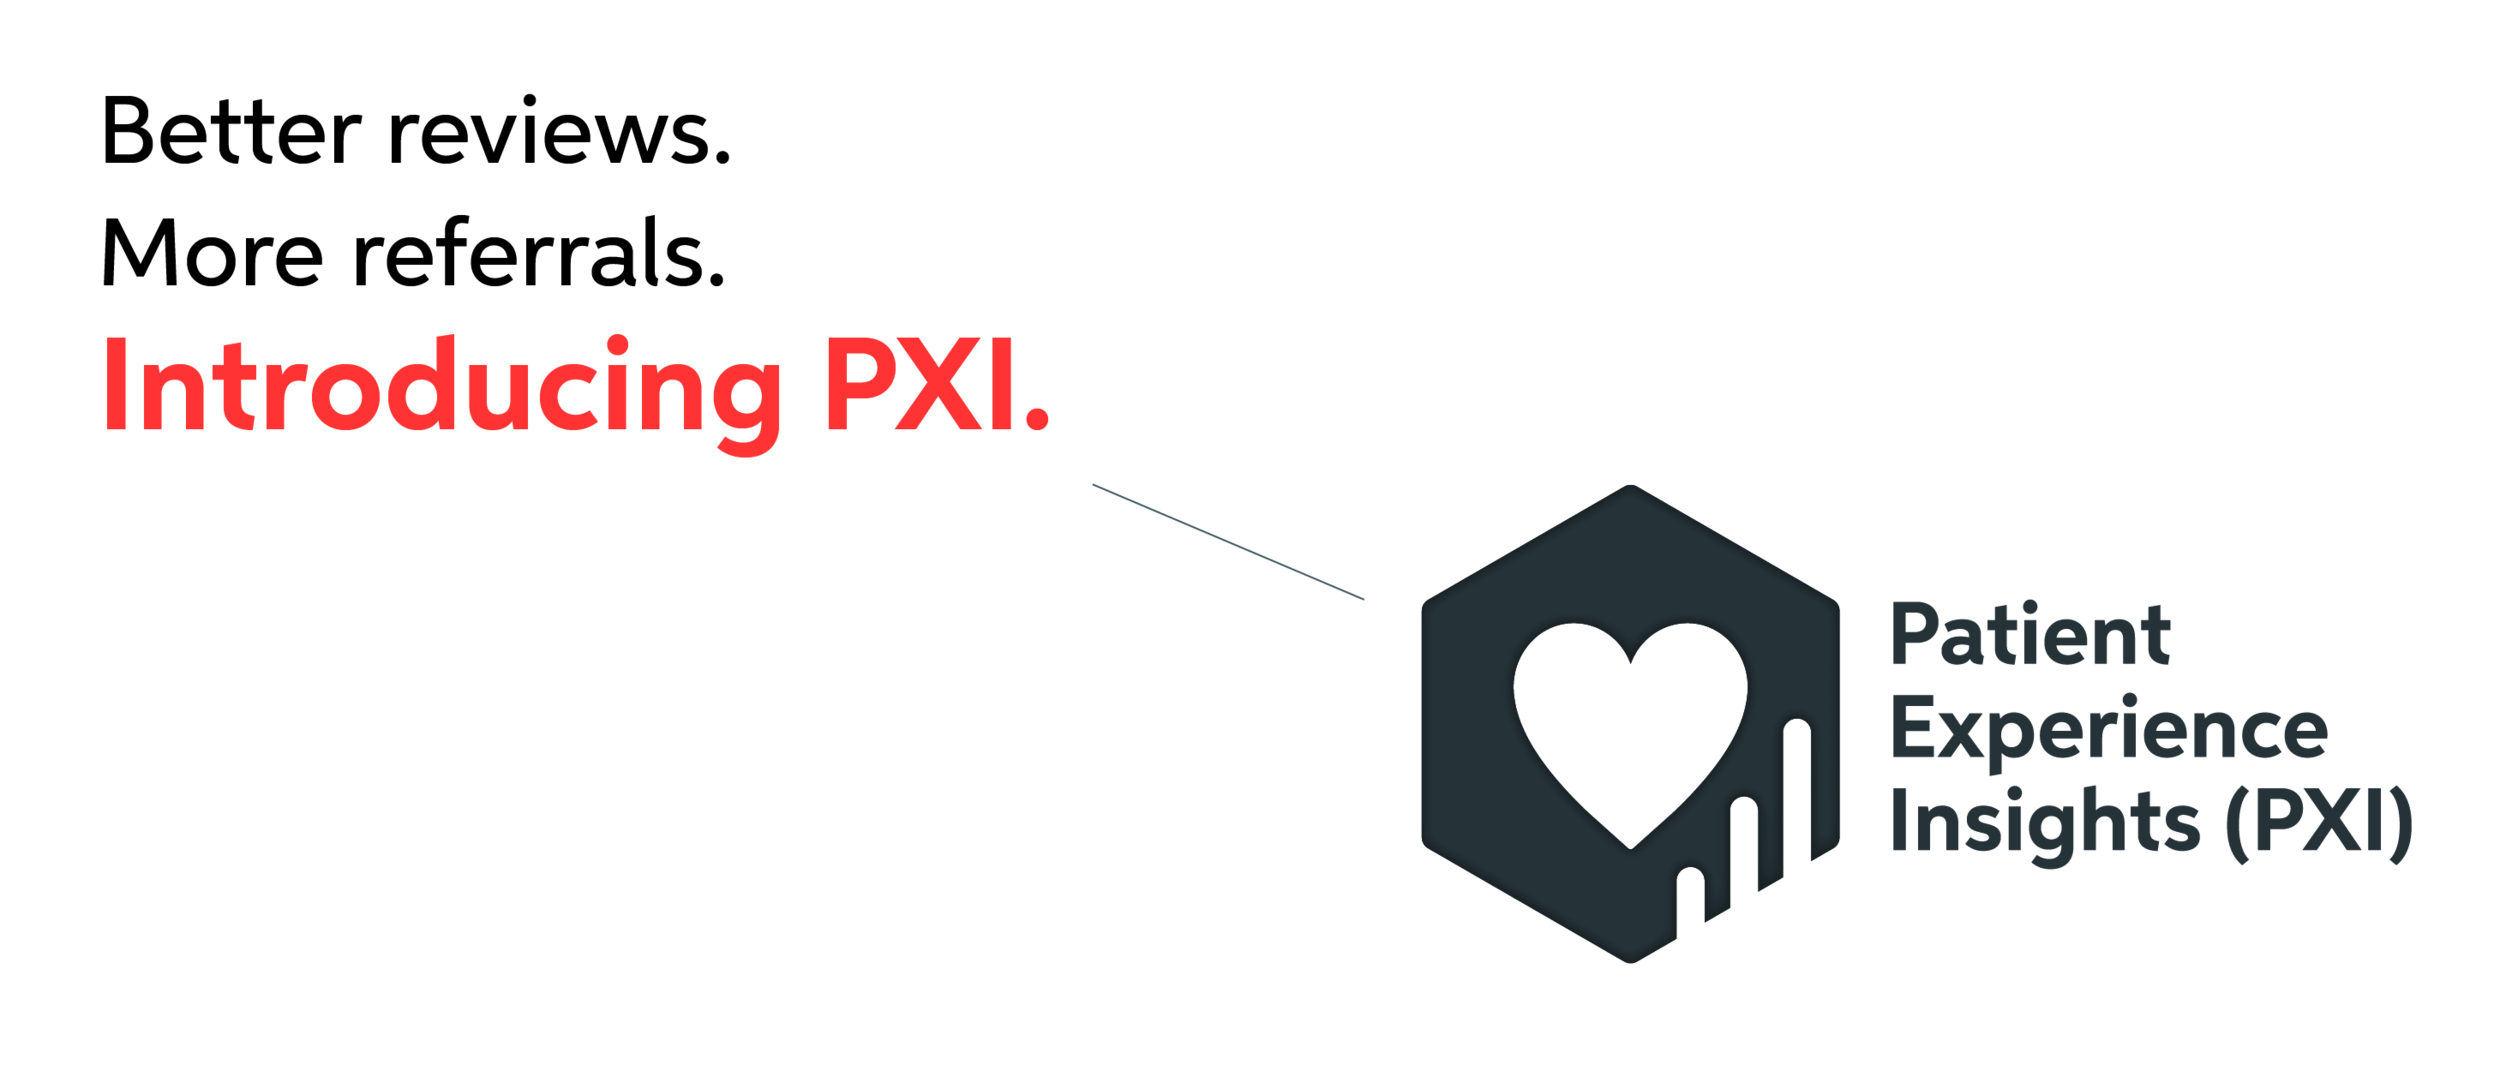 PXI-Email-Header-1.png